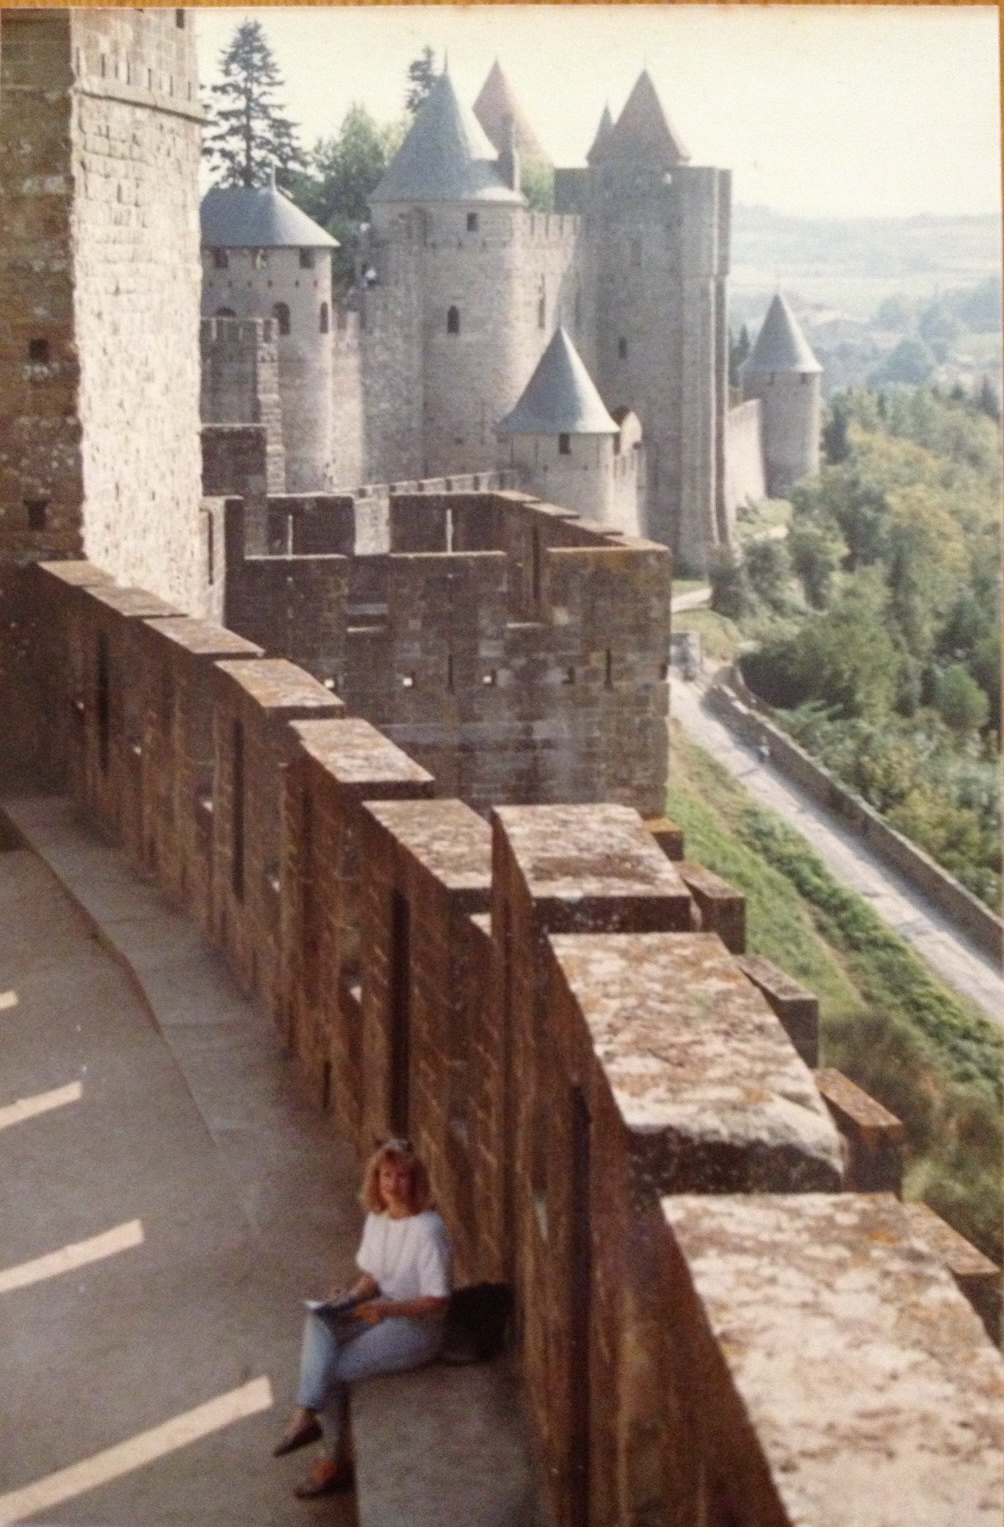 Deb Carcassonne cropped